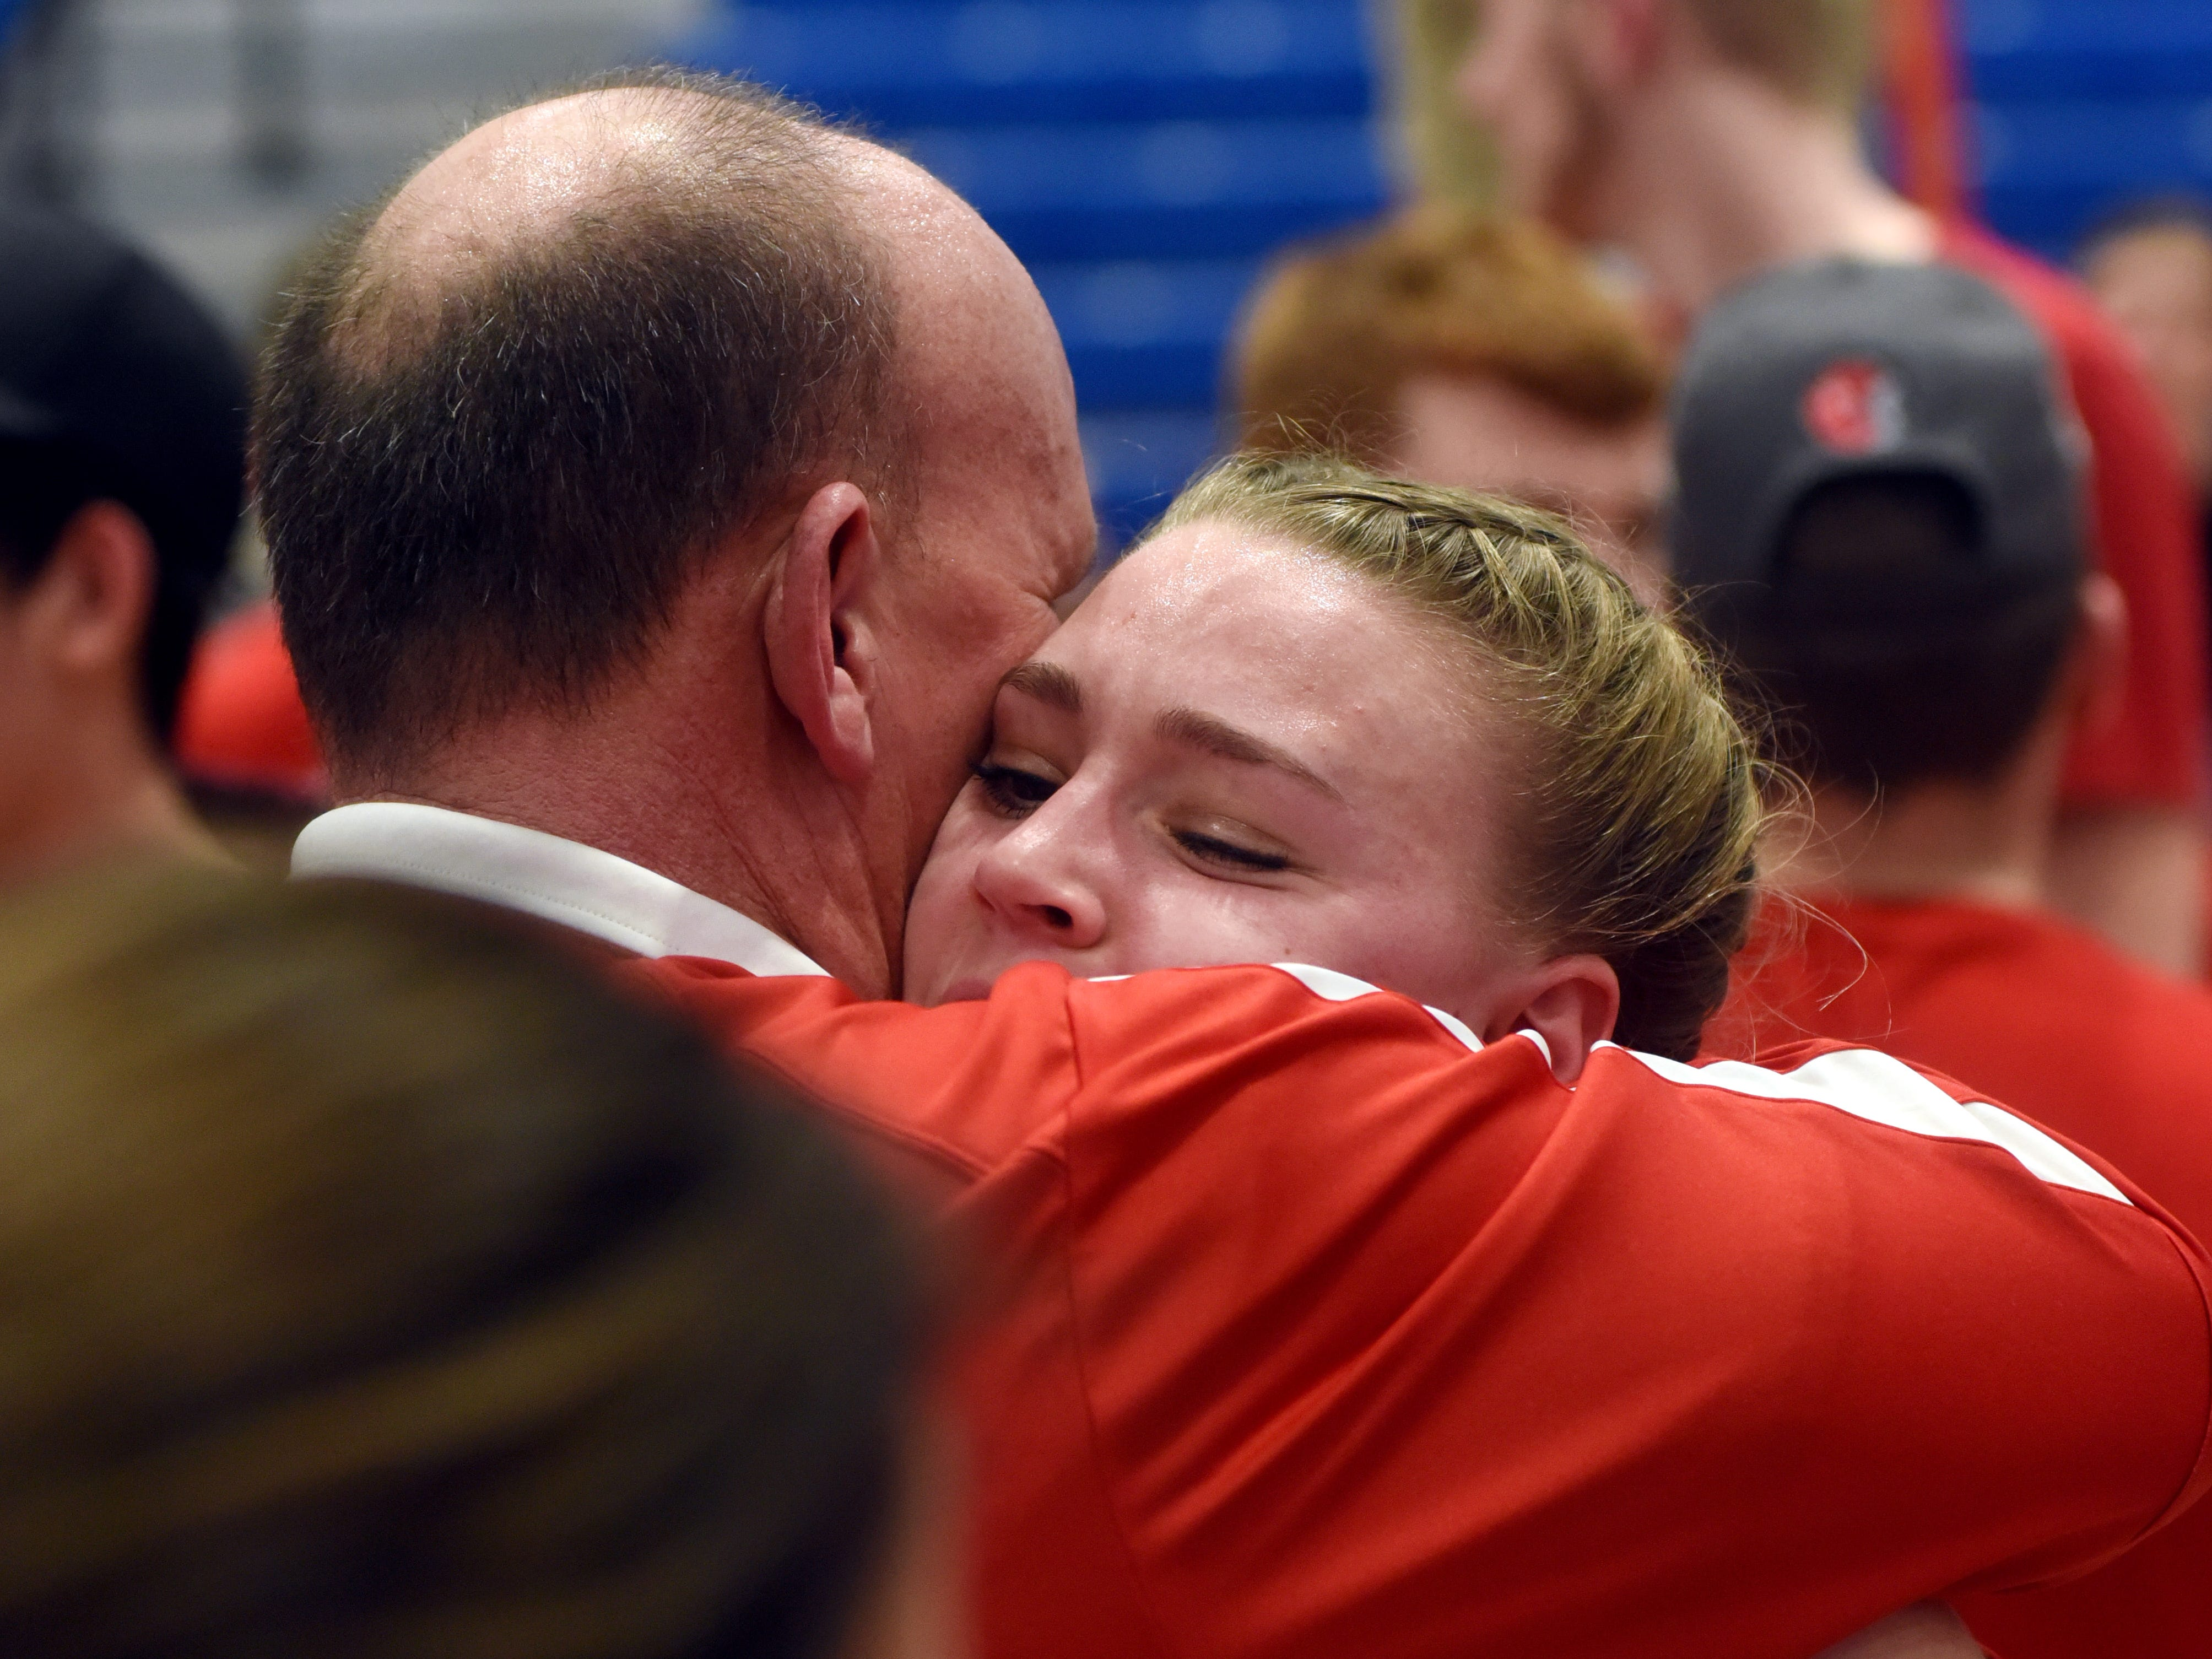 Emma Conrad gets a hug from her father, Jason, following Sheridan's 48-46 win against New Philadelphia on Friday night in a Division II regional final at Winland Memorial Gymnasium.